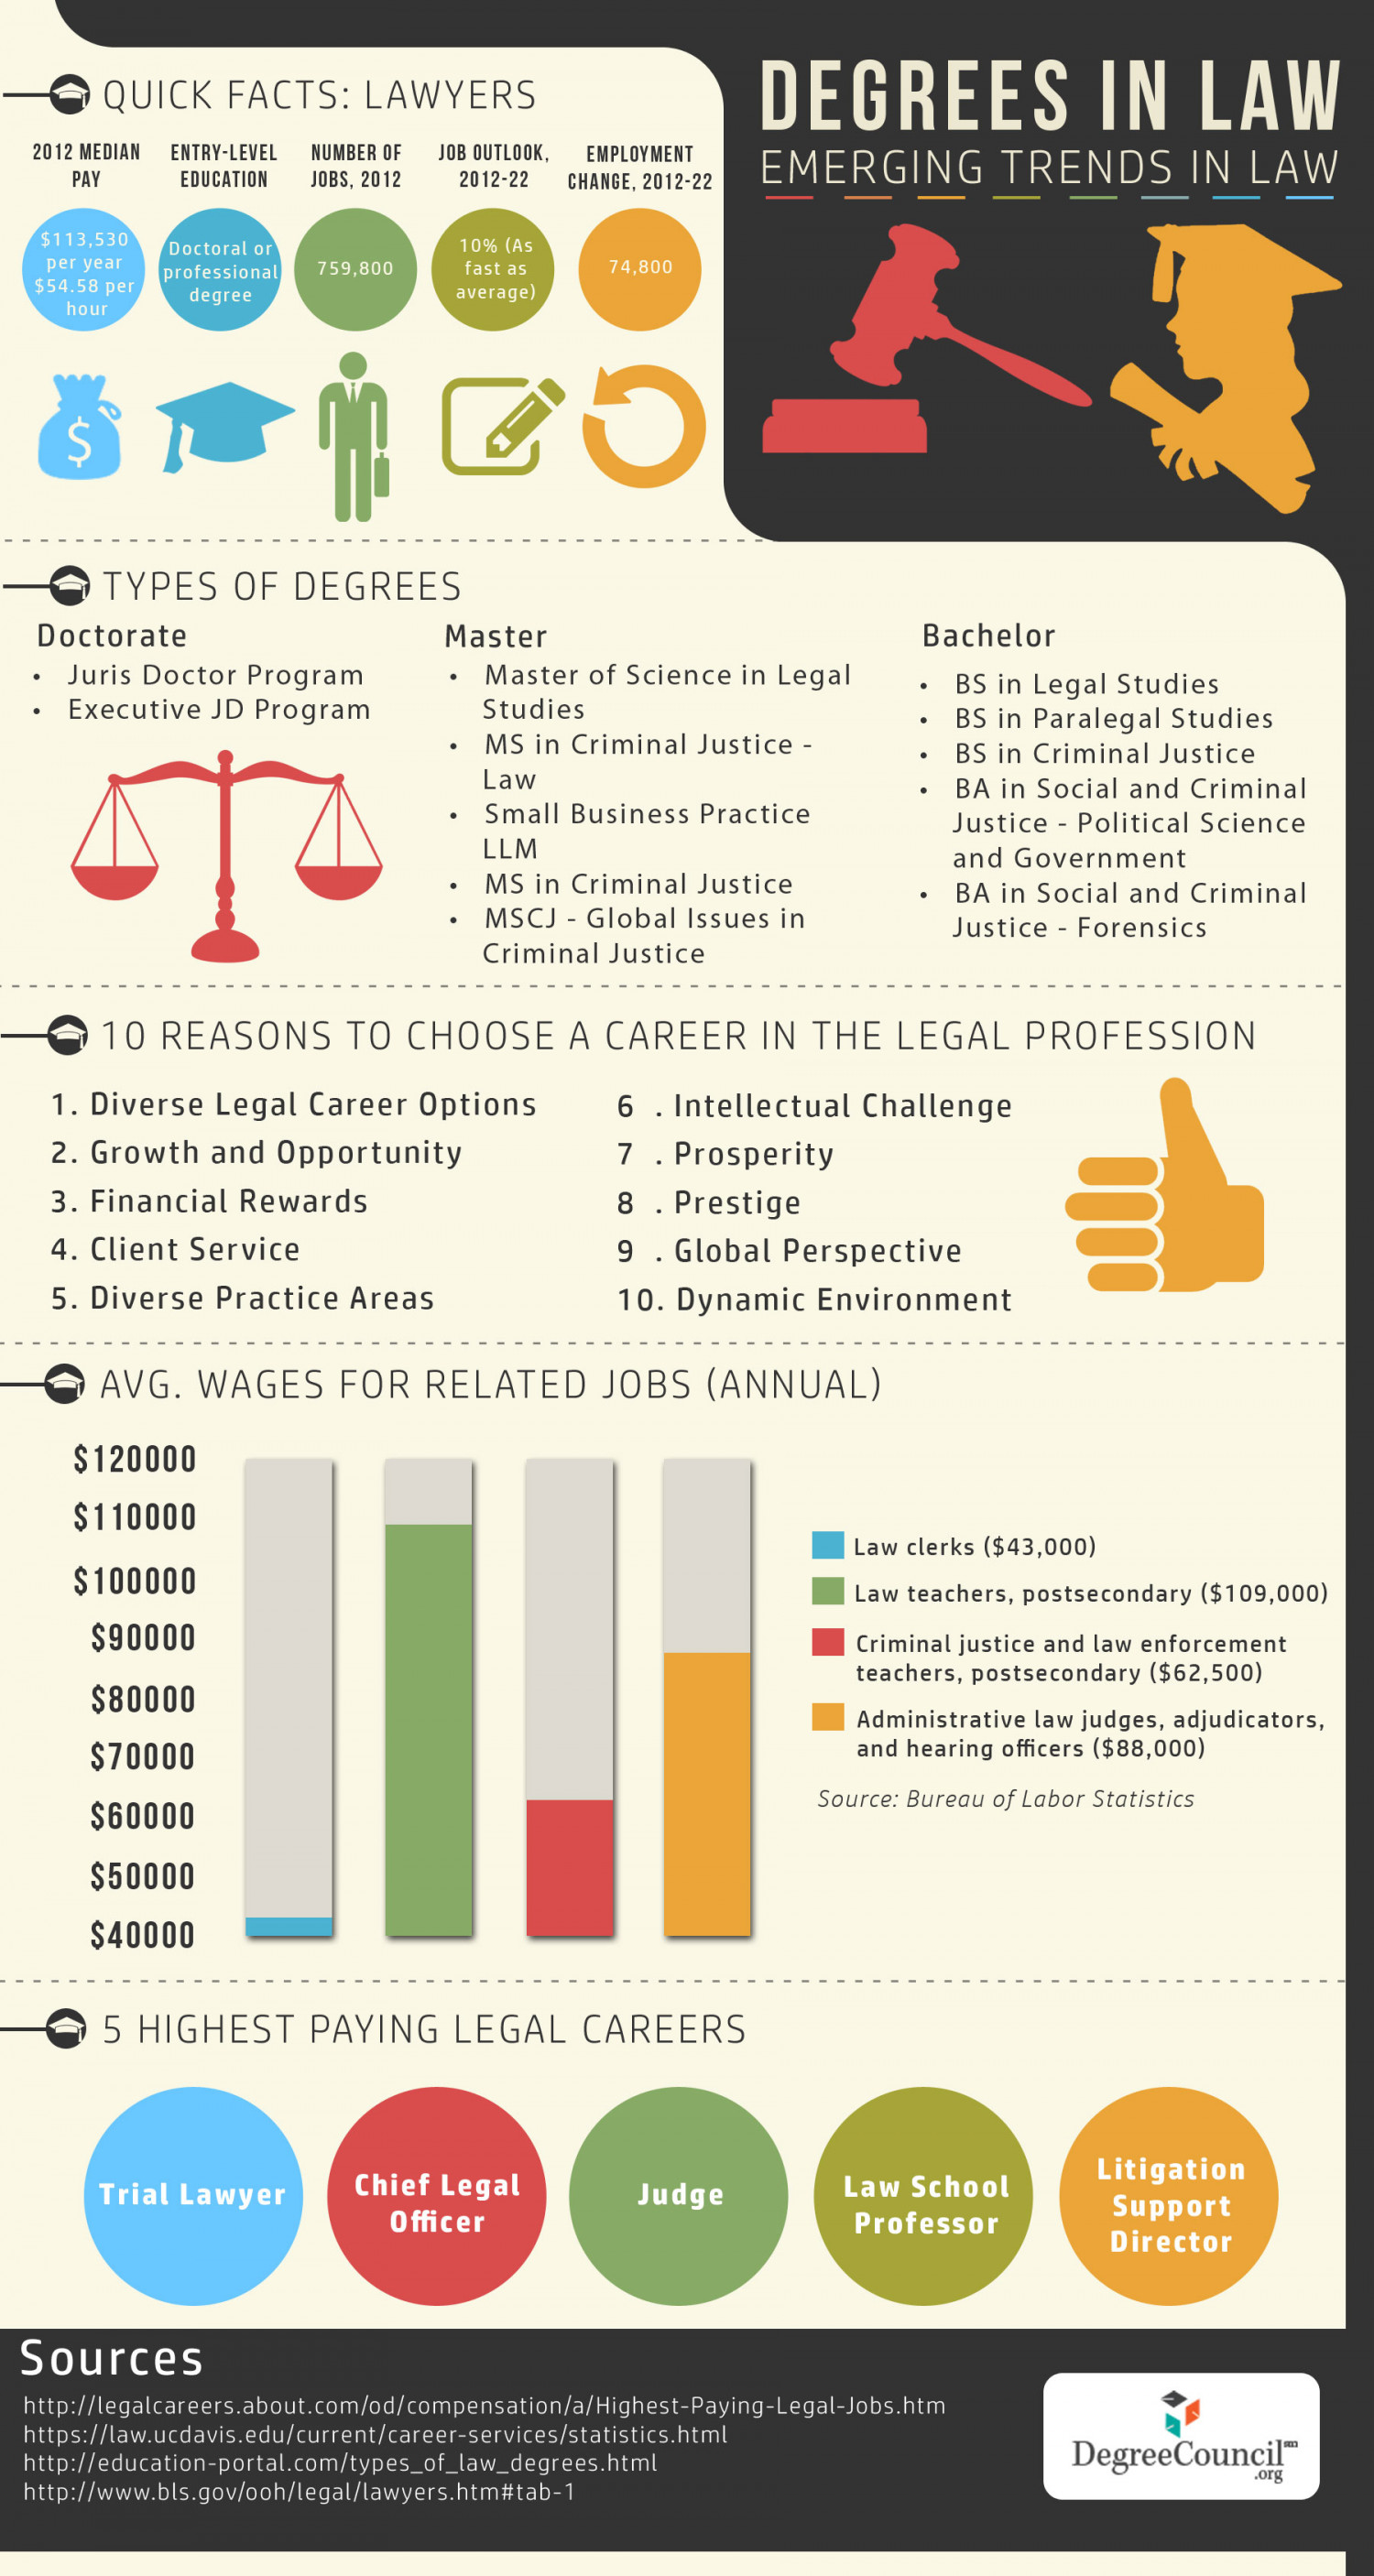 Degrees in Law - 2014 Emerging Trends in Law Infographic